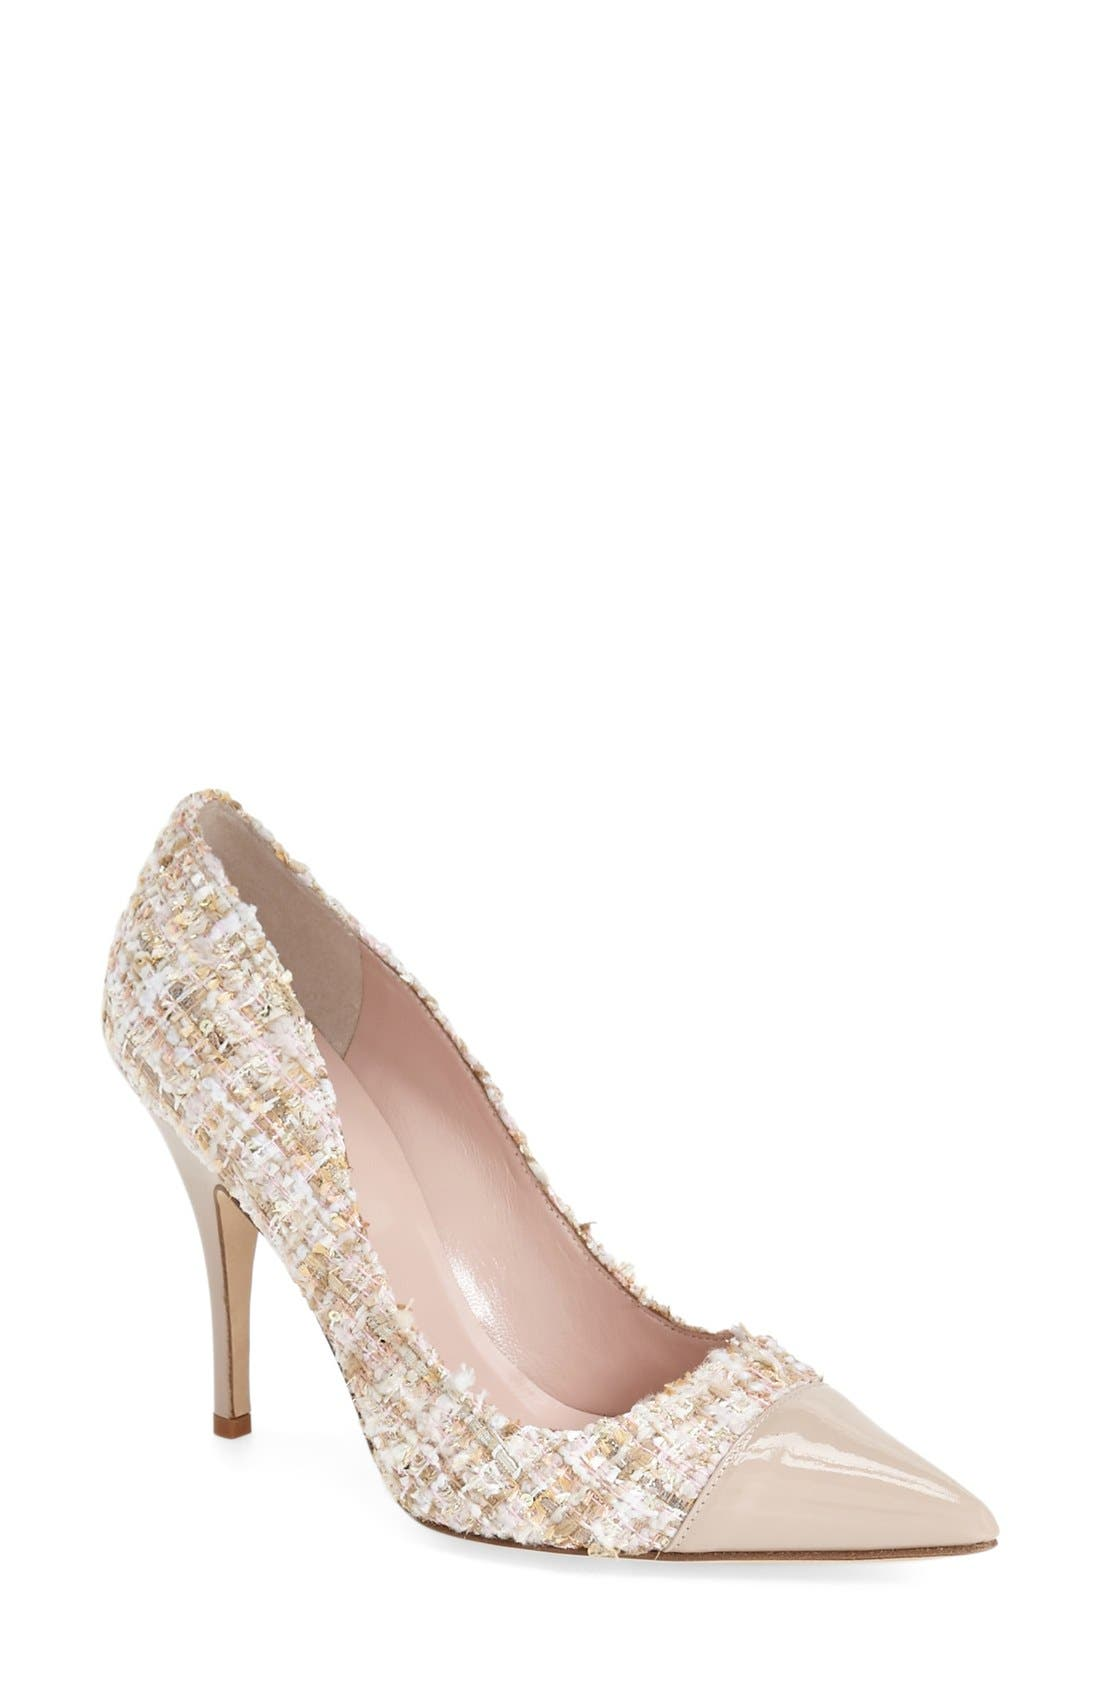 Alternate Image 1 Selected - kate spade new york 'lacy' pointy toe pump (Women)